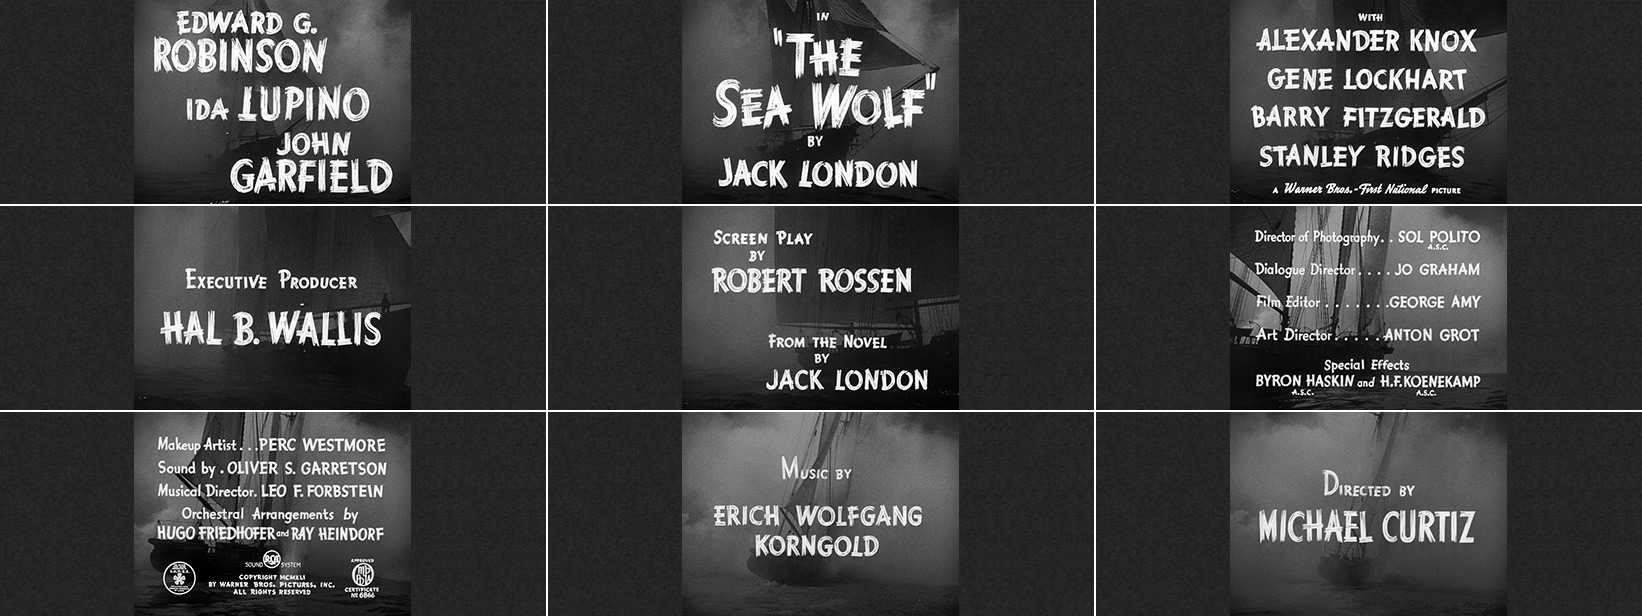 The Sea Wolf (1941) movie title